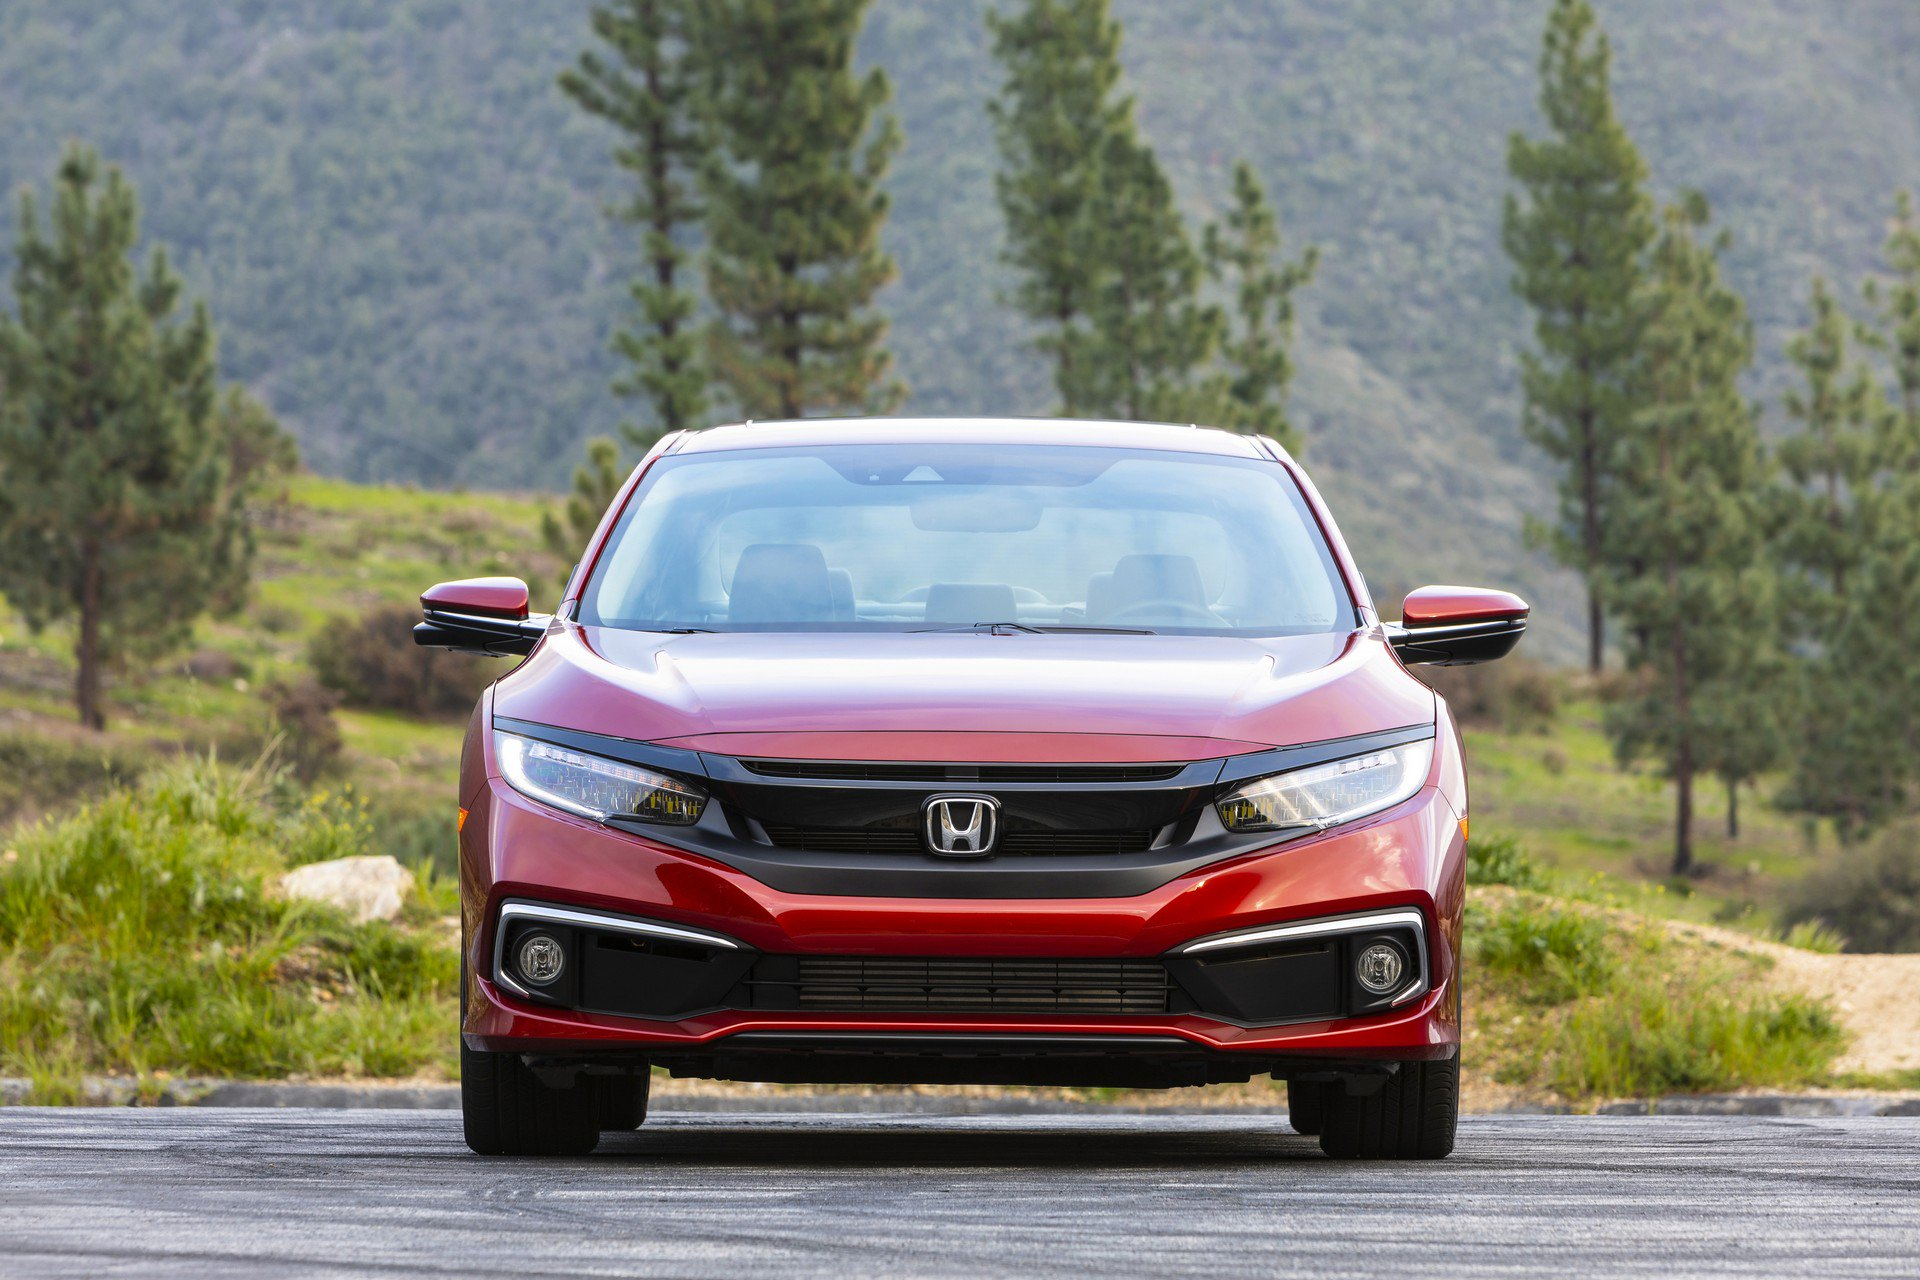 2020-honda-civic-2.jpg